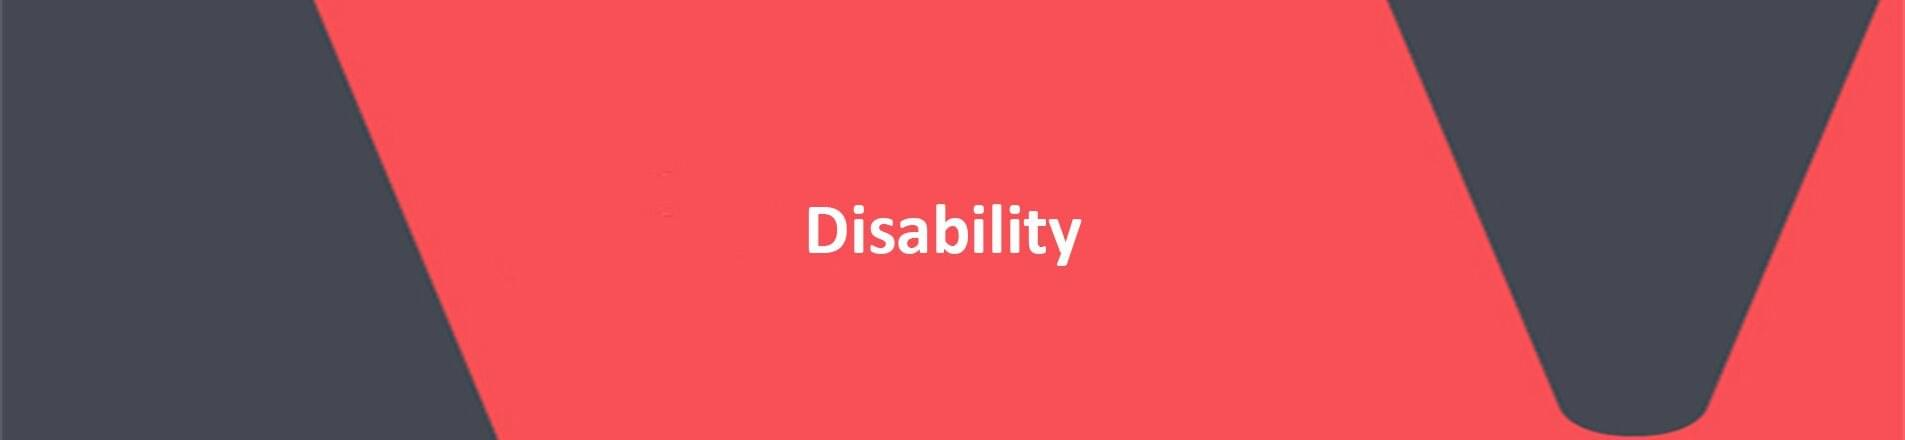 The word 'Disability' on red VERCIDA background